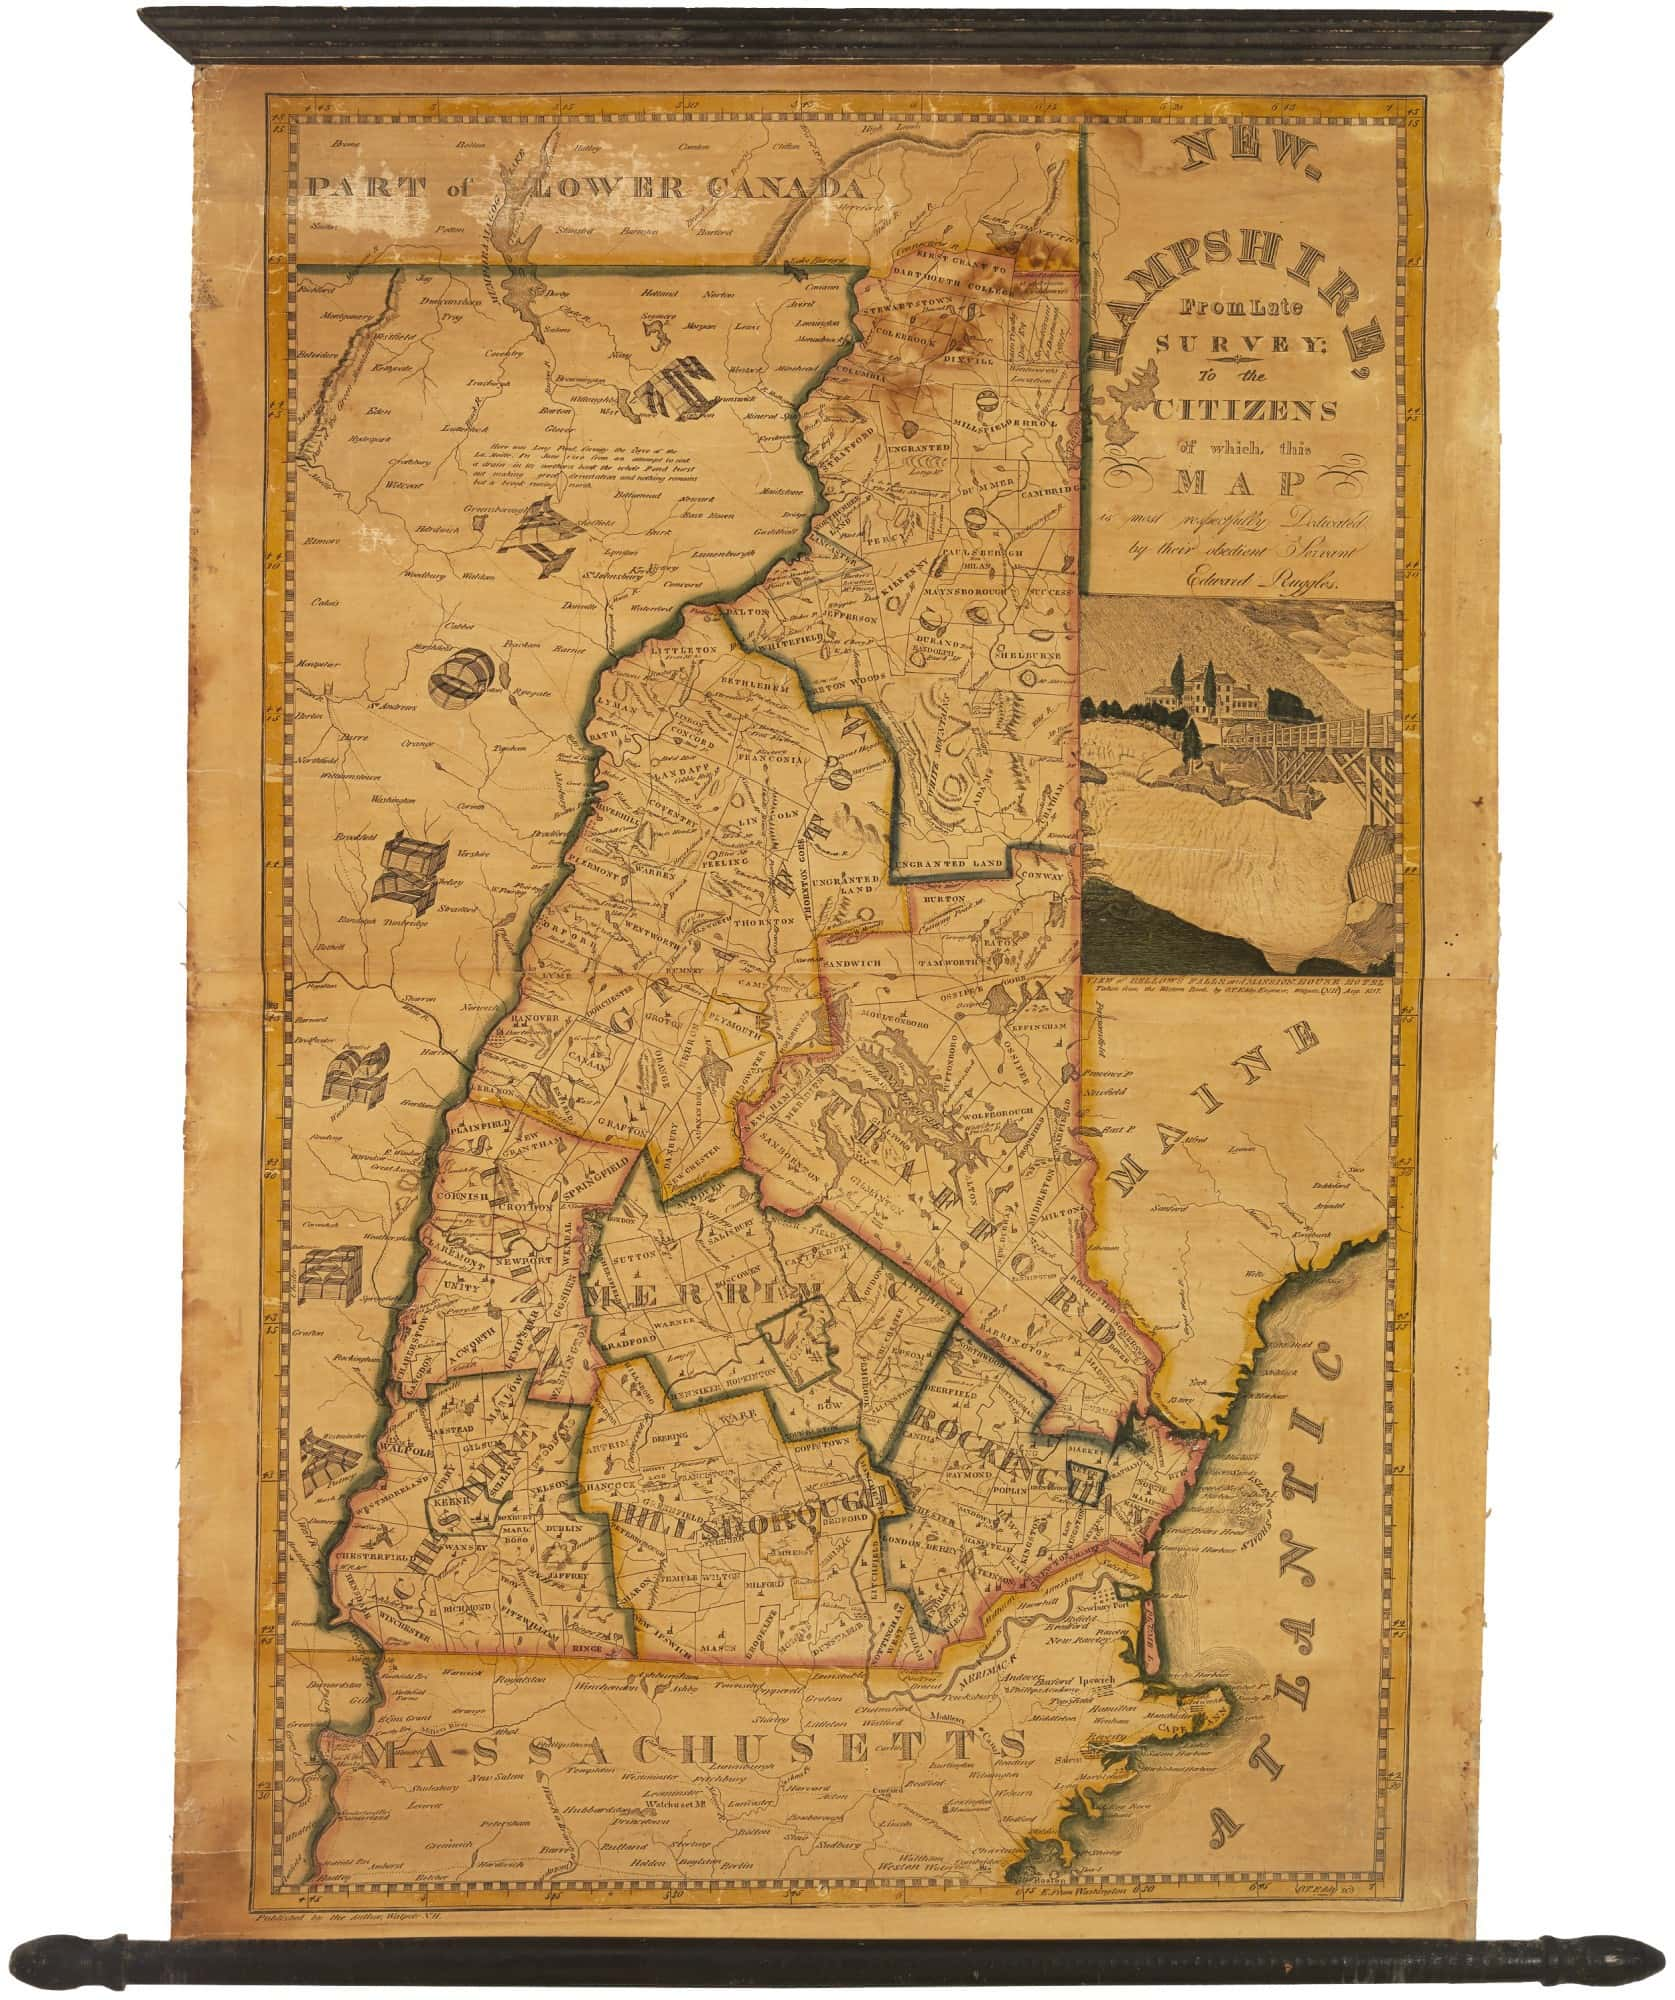 Charming Piracy Of The Carrigain Map Of New Hampshire Rare - Map of nh